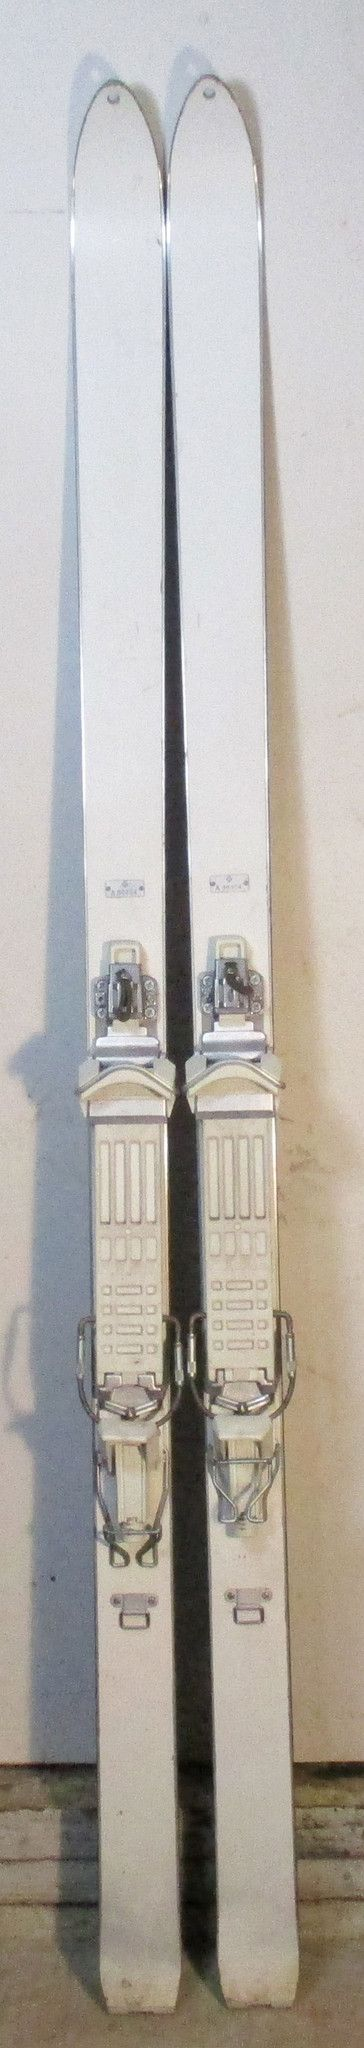 10th Mountain Division Snow Skis For Sale 185cm Excellent Condition w/Alpine Touring Fritschi FT-88 Bindings